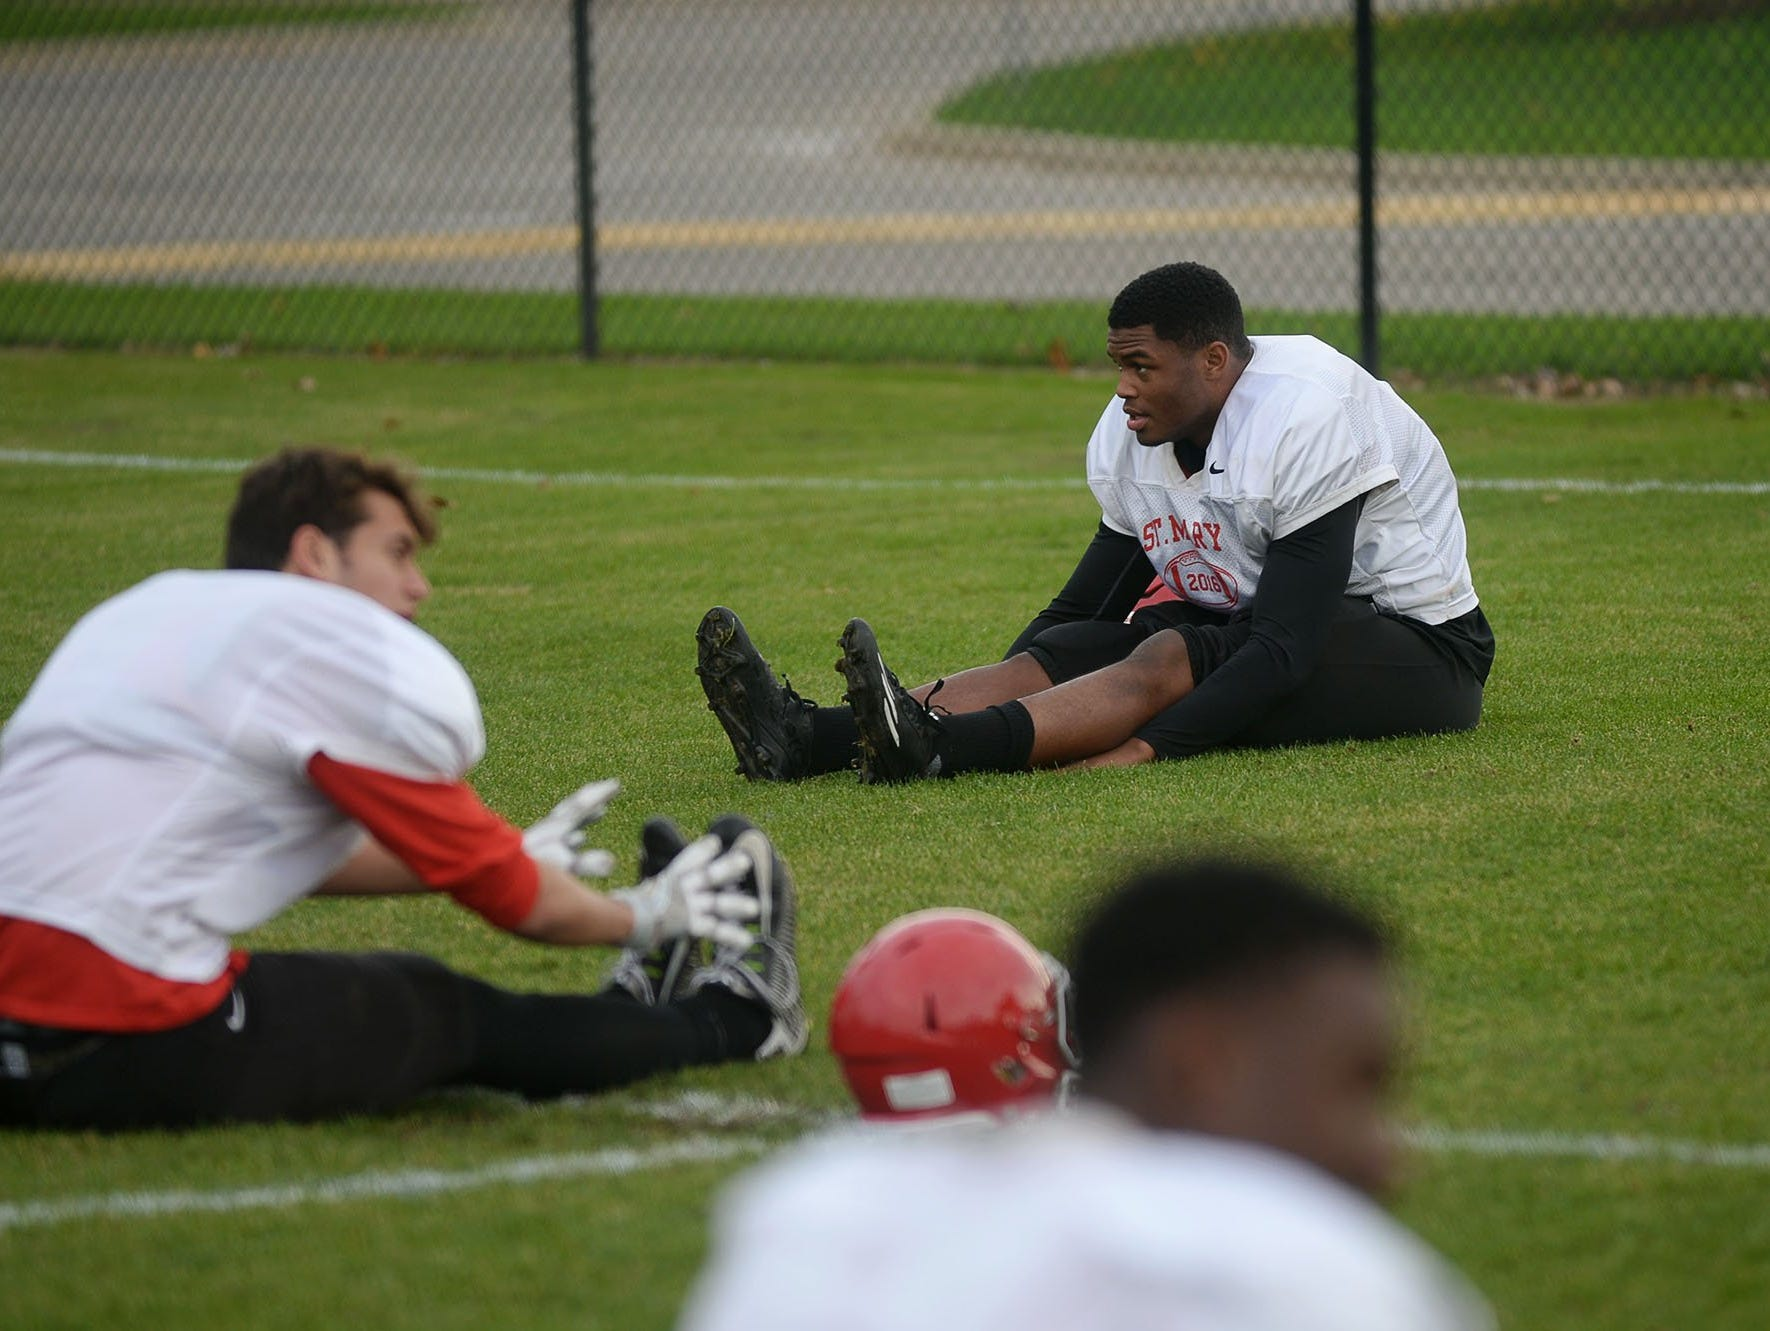 Orchard Lake St. Mary's linebacker Josh Ross leads stretching during practice Tuesday, Nov. 8, 2016 at Orchard Lake St. Mary's.